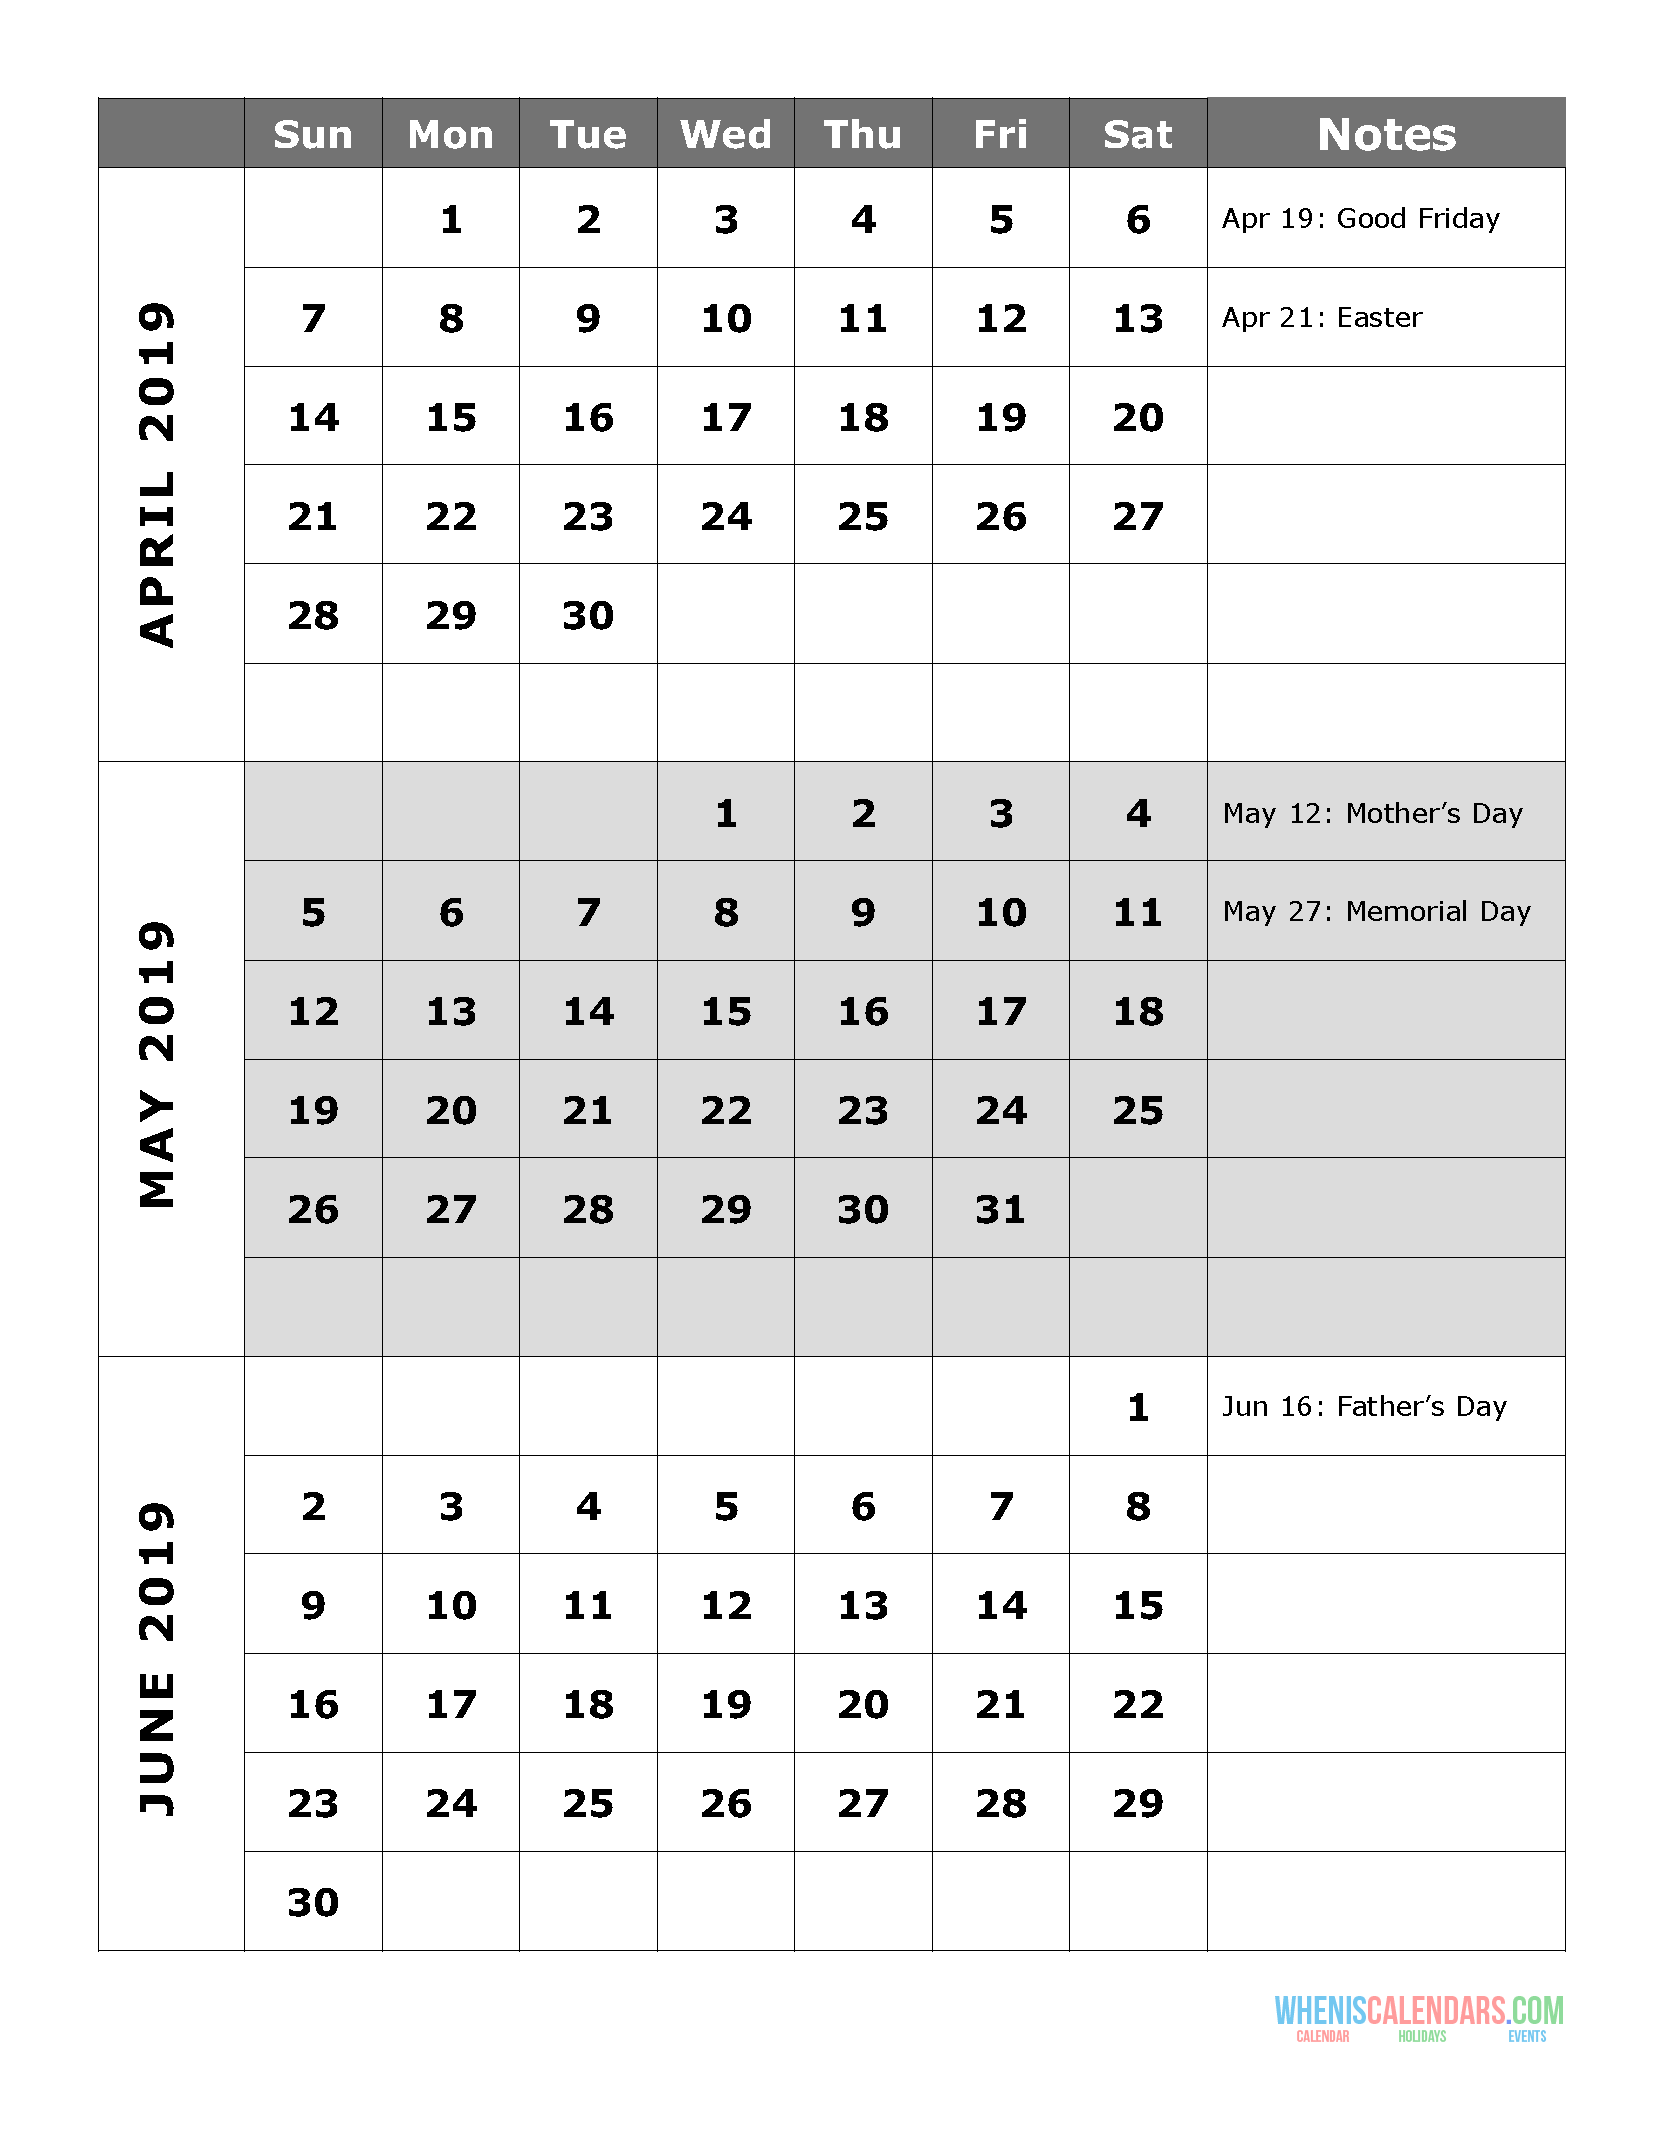 image regarding April Calender Printable known as 2019 Quarterly Calendar Printable Q.2: April May perhaps June Free of charge